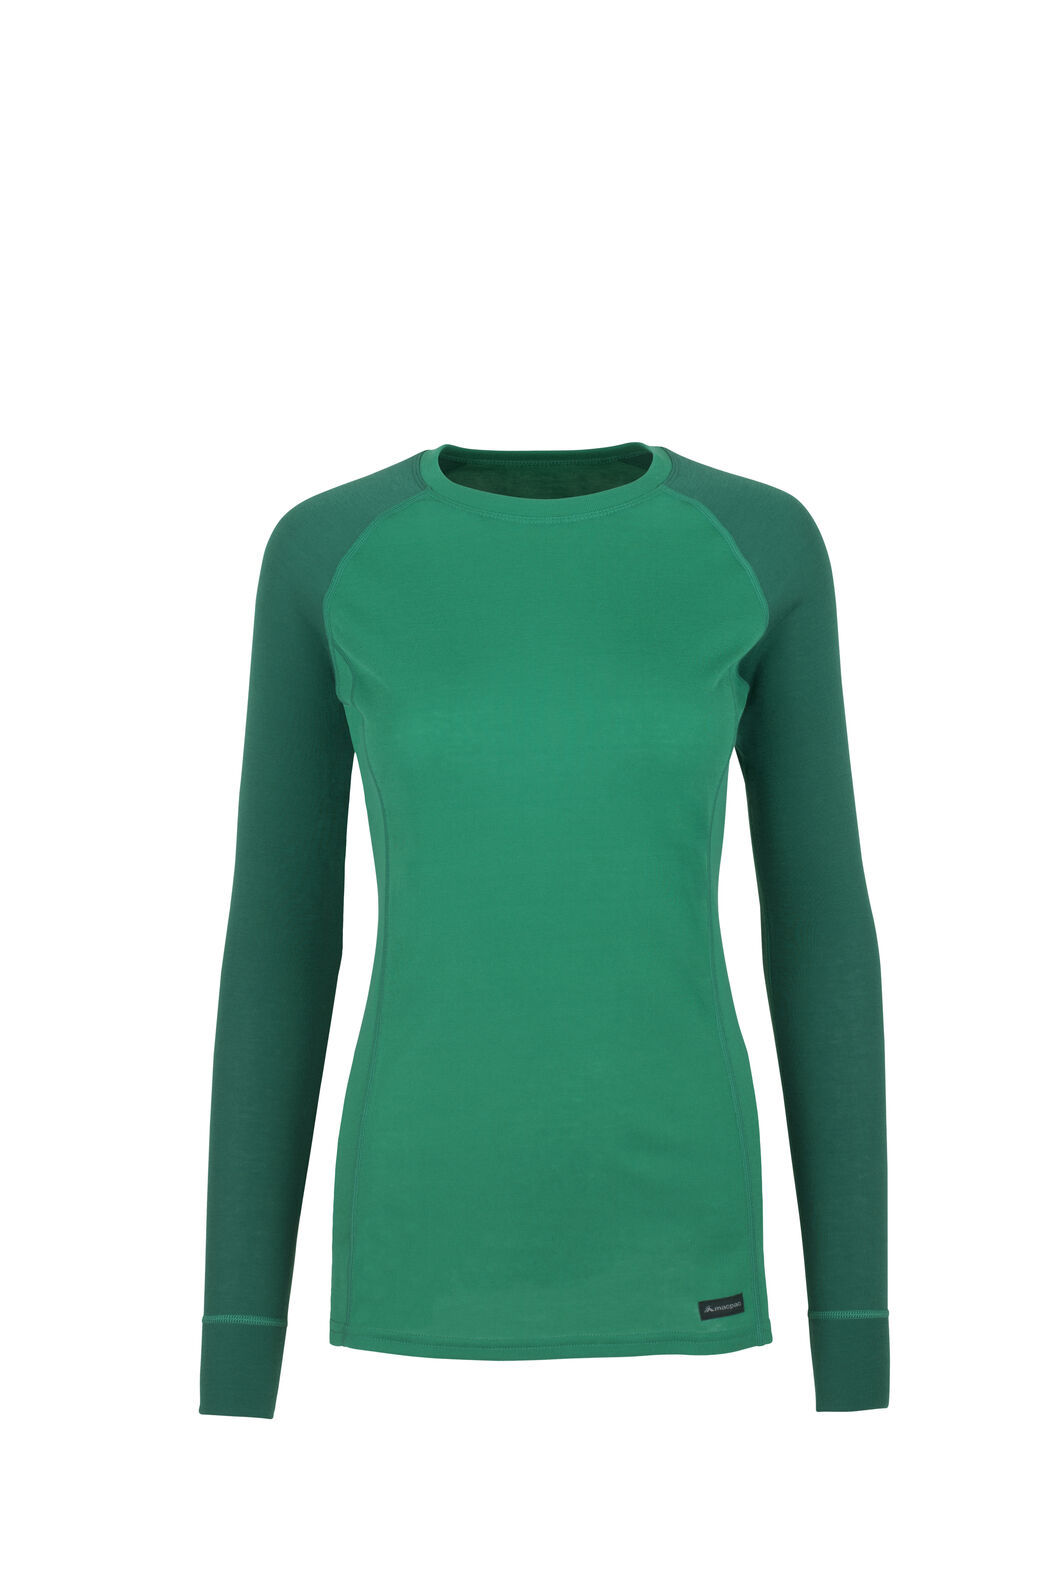 Macpac Geothermal Long Sleeve Top - Women's, Storm/Parasailing, hi-res